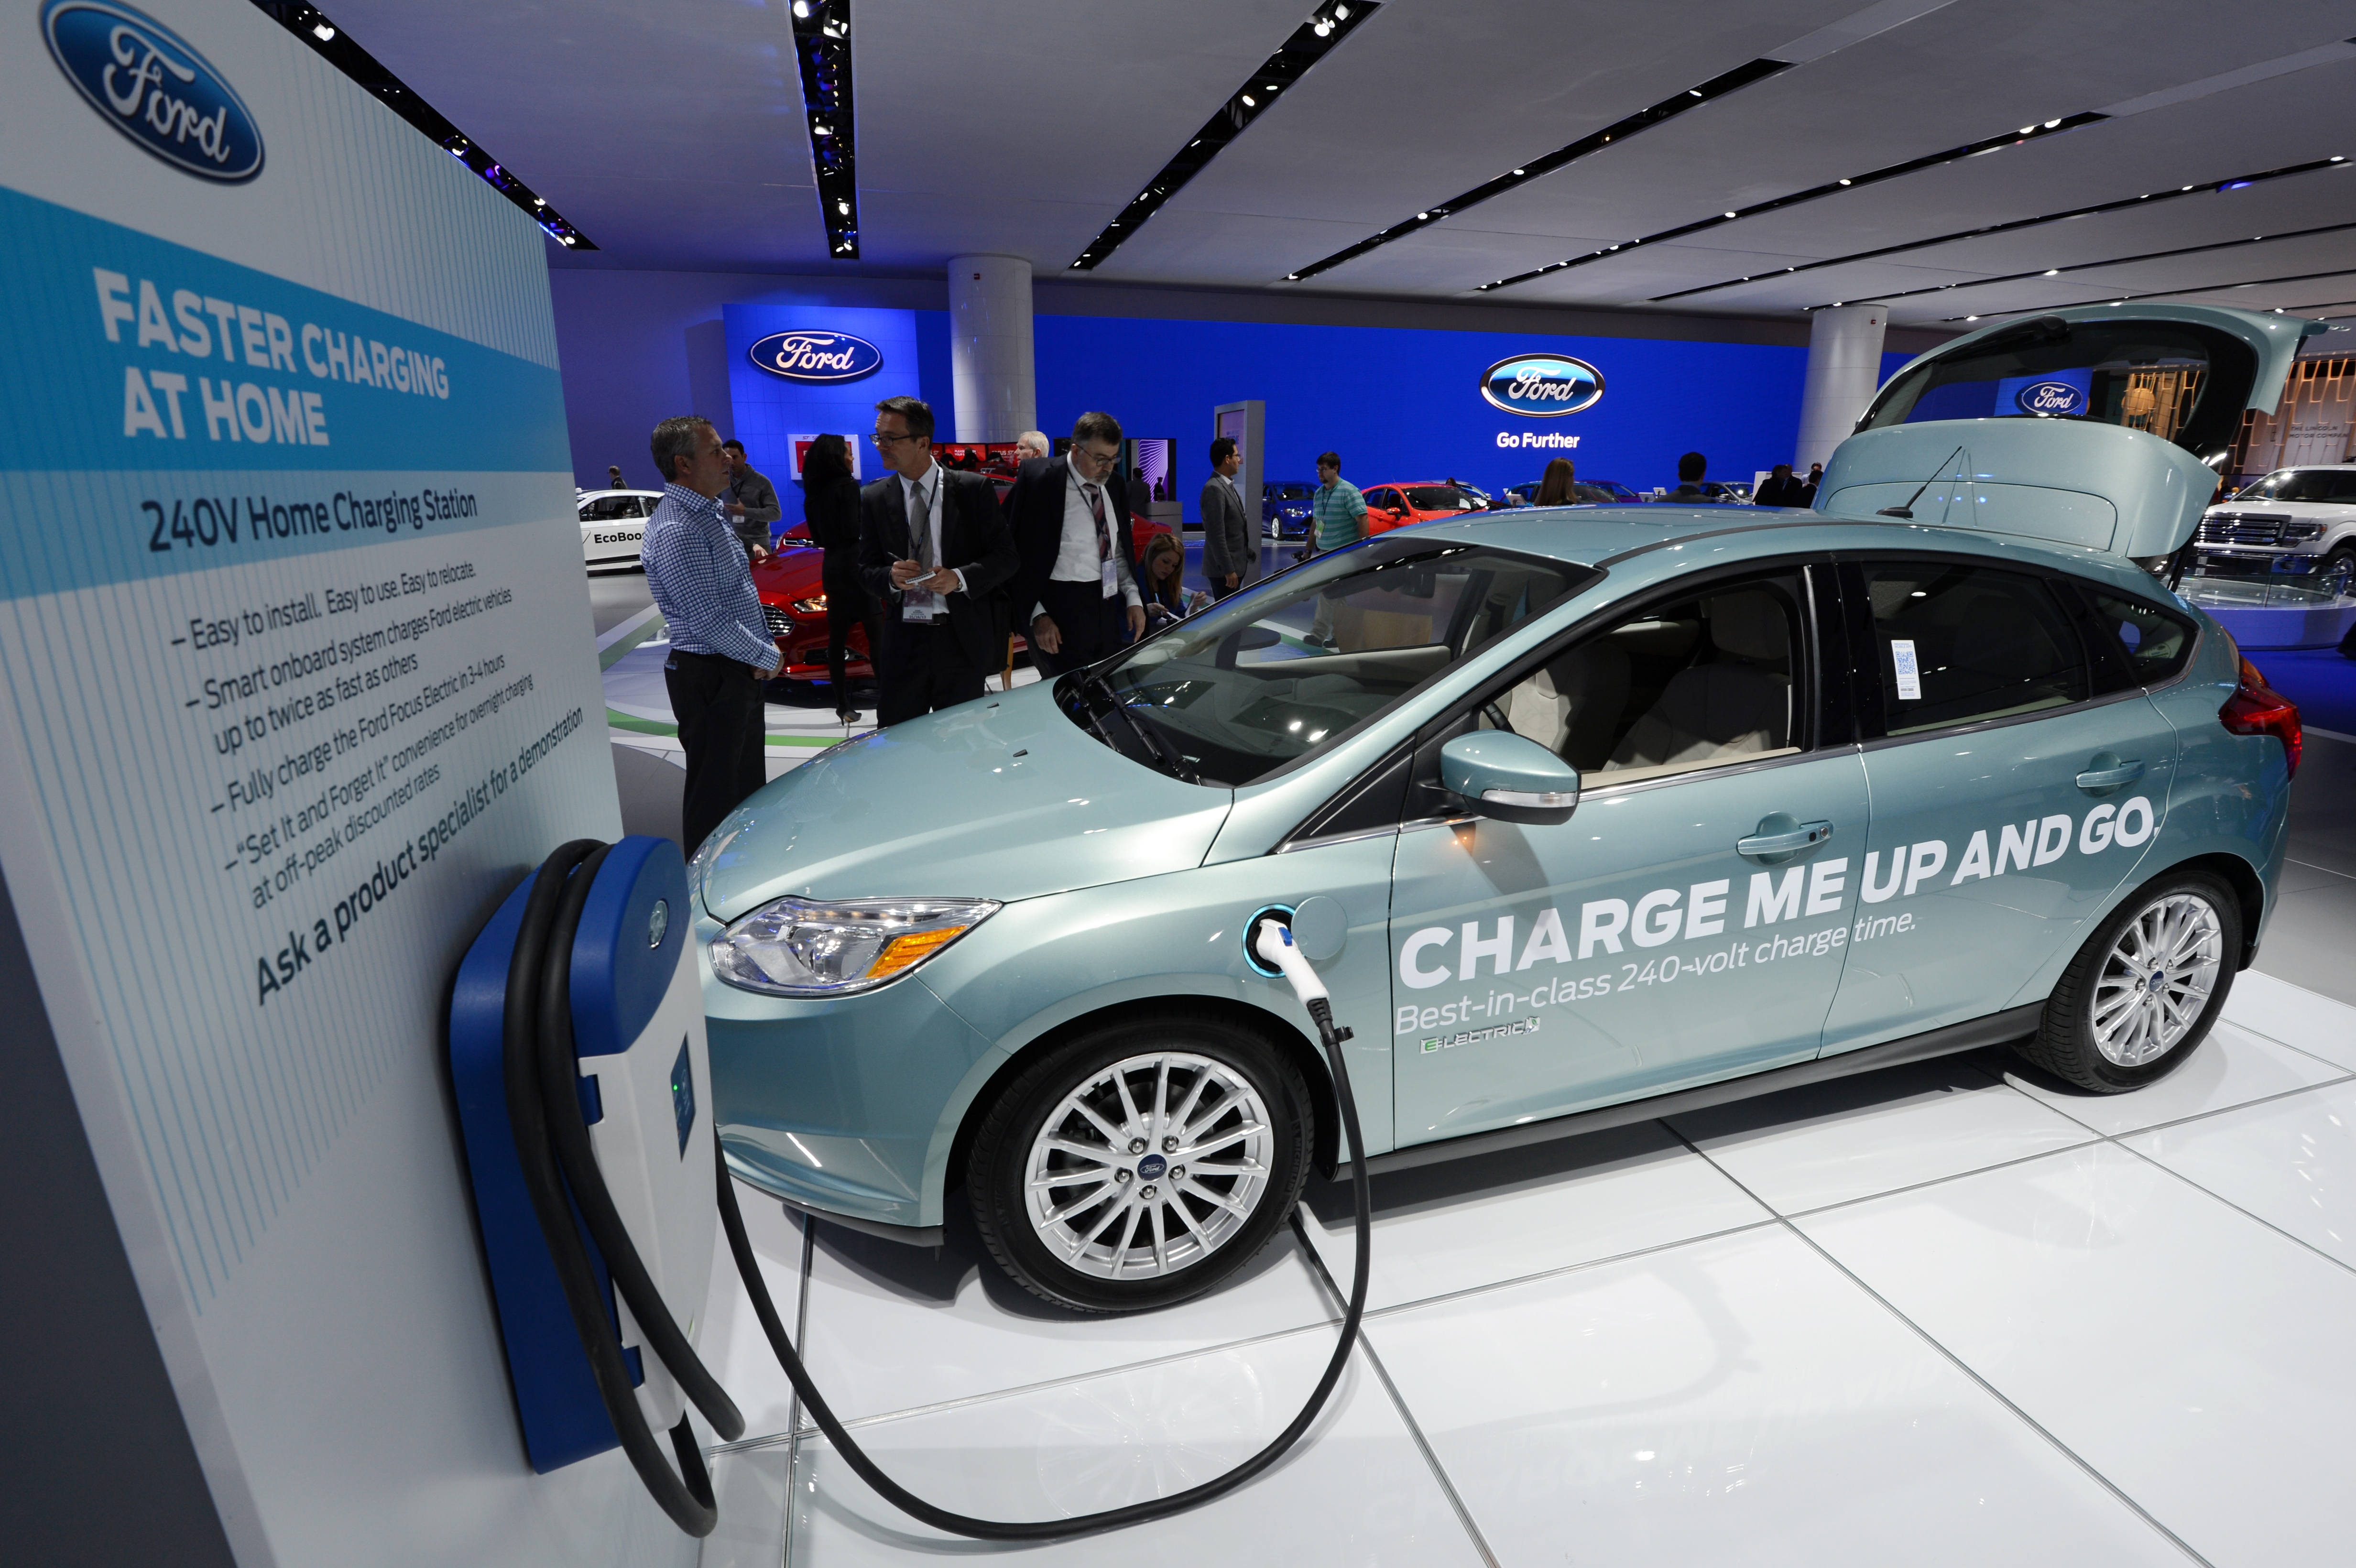 Ford Electric Car >> Ford Confirms Plans For A Long Range Tesla And Gm Beating